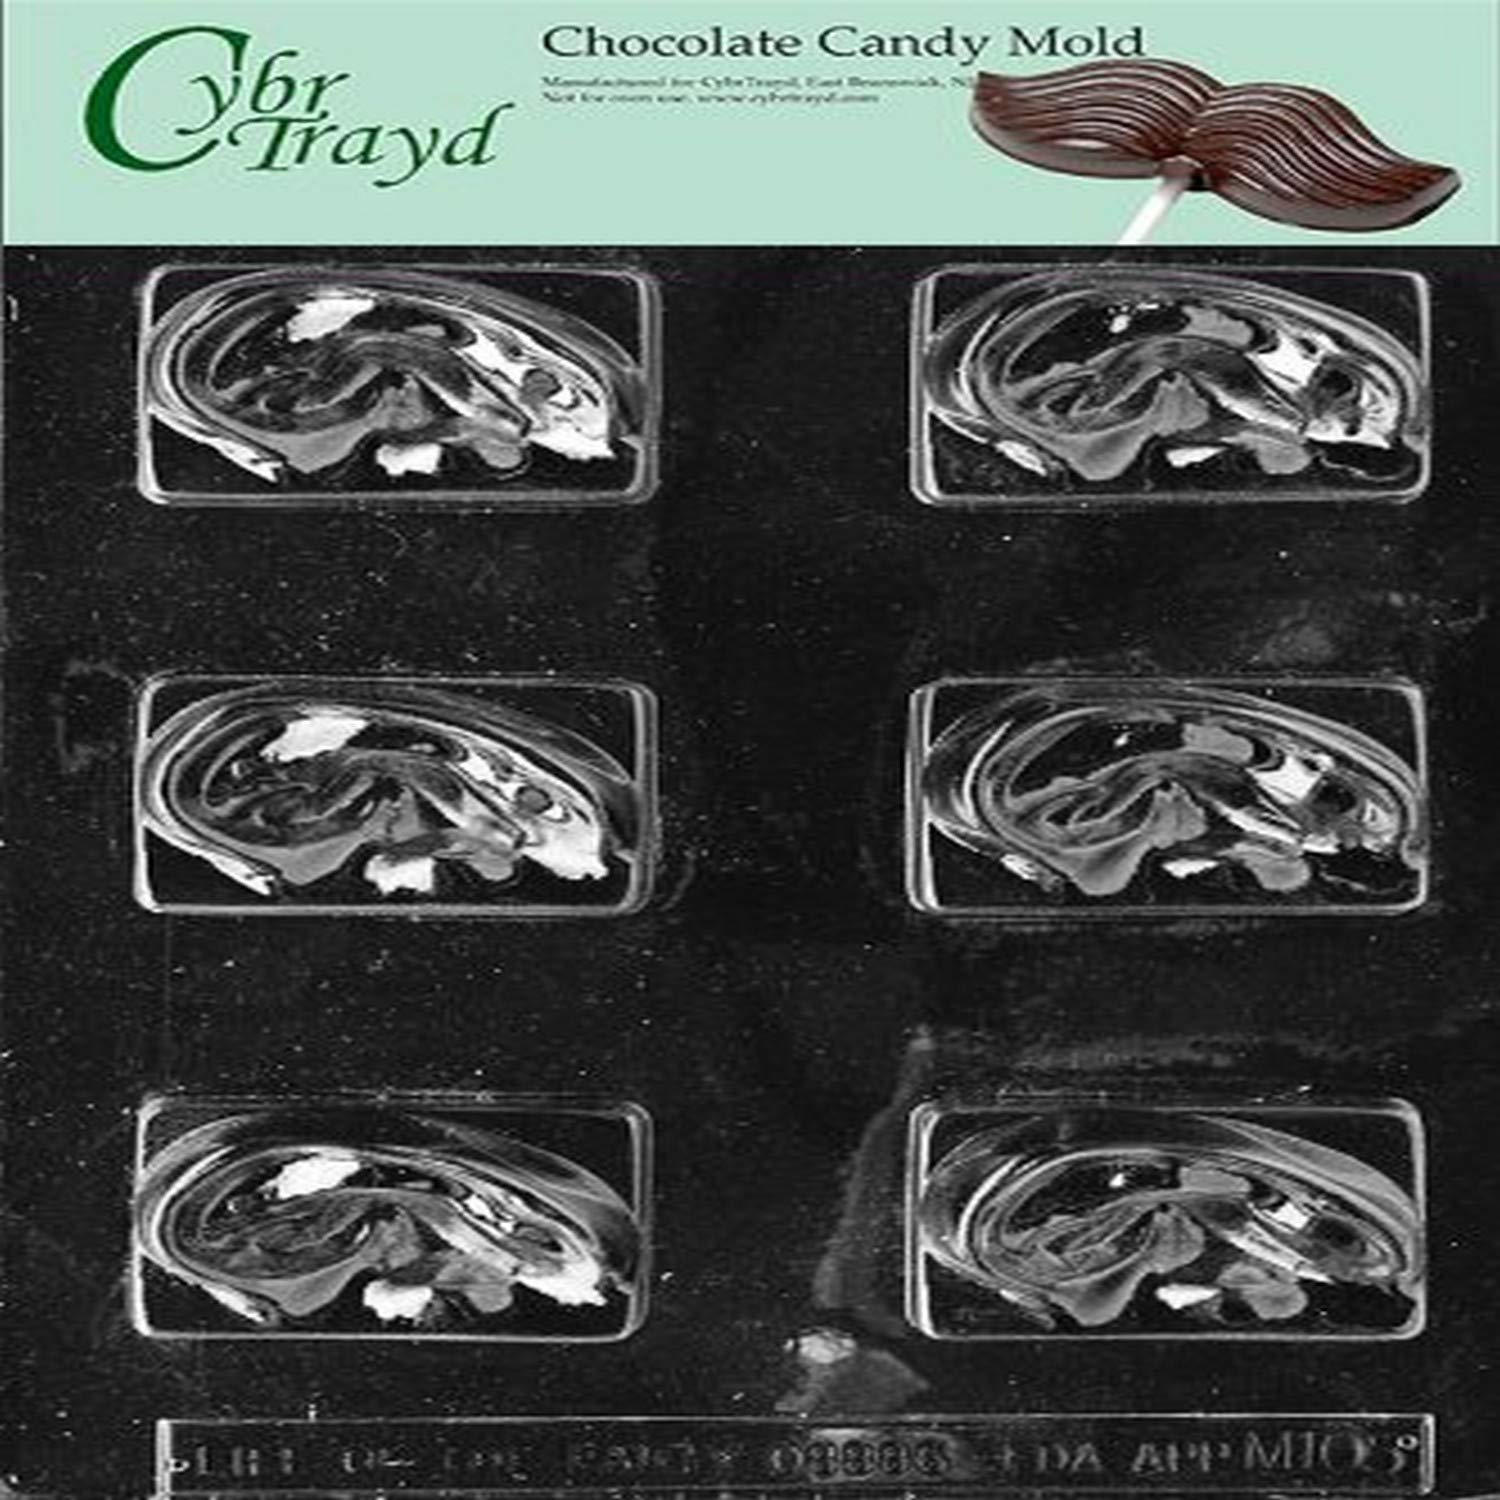 Cybrtrayd M105 Ears Chocolate Candy Mold with Exclusive Cybrtrayd Copyrighted Chocolate Molding Instructions